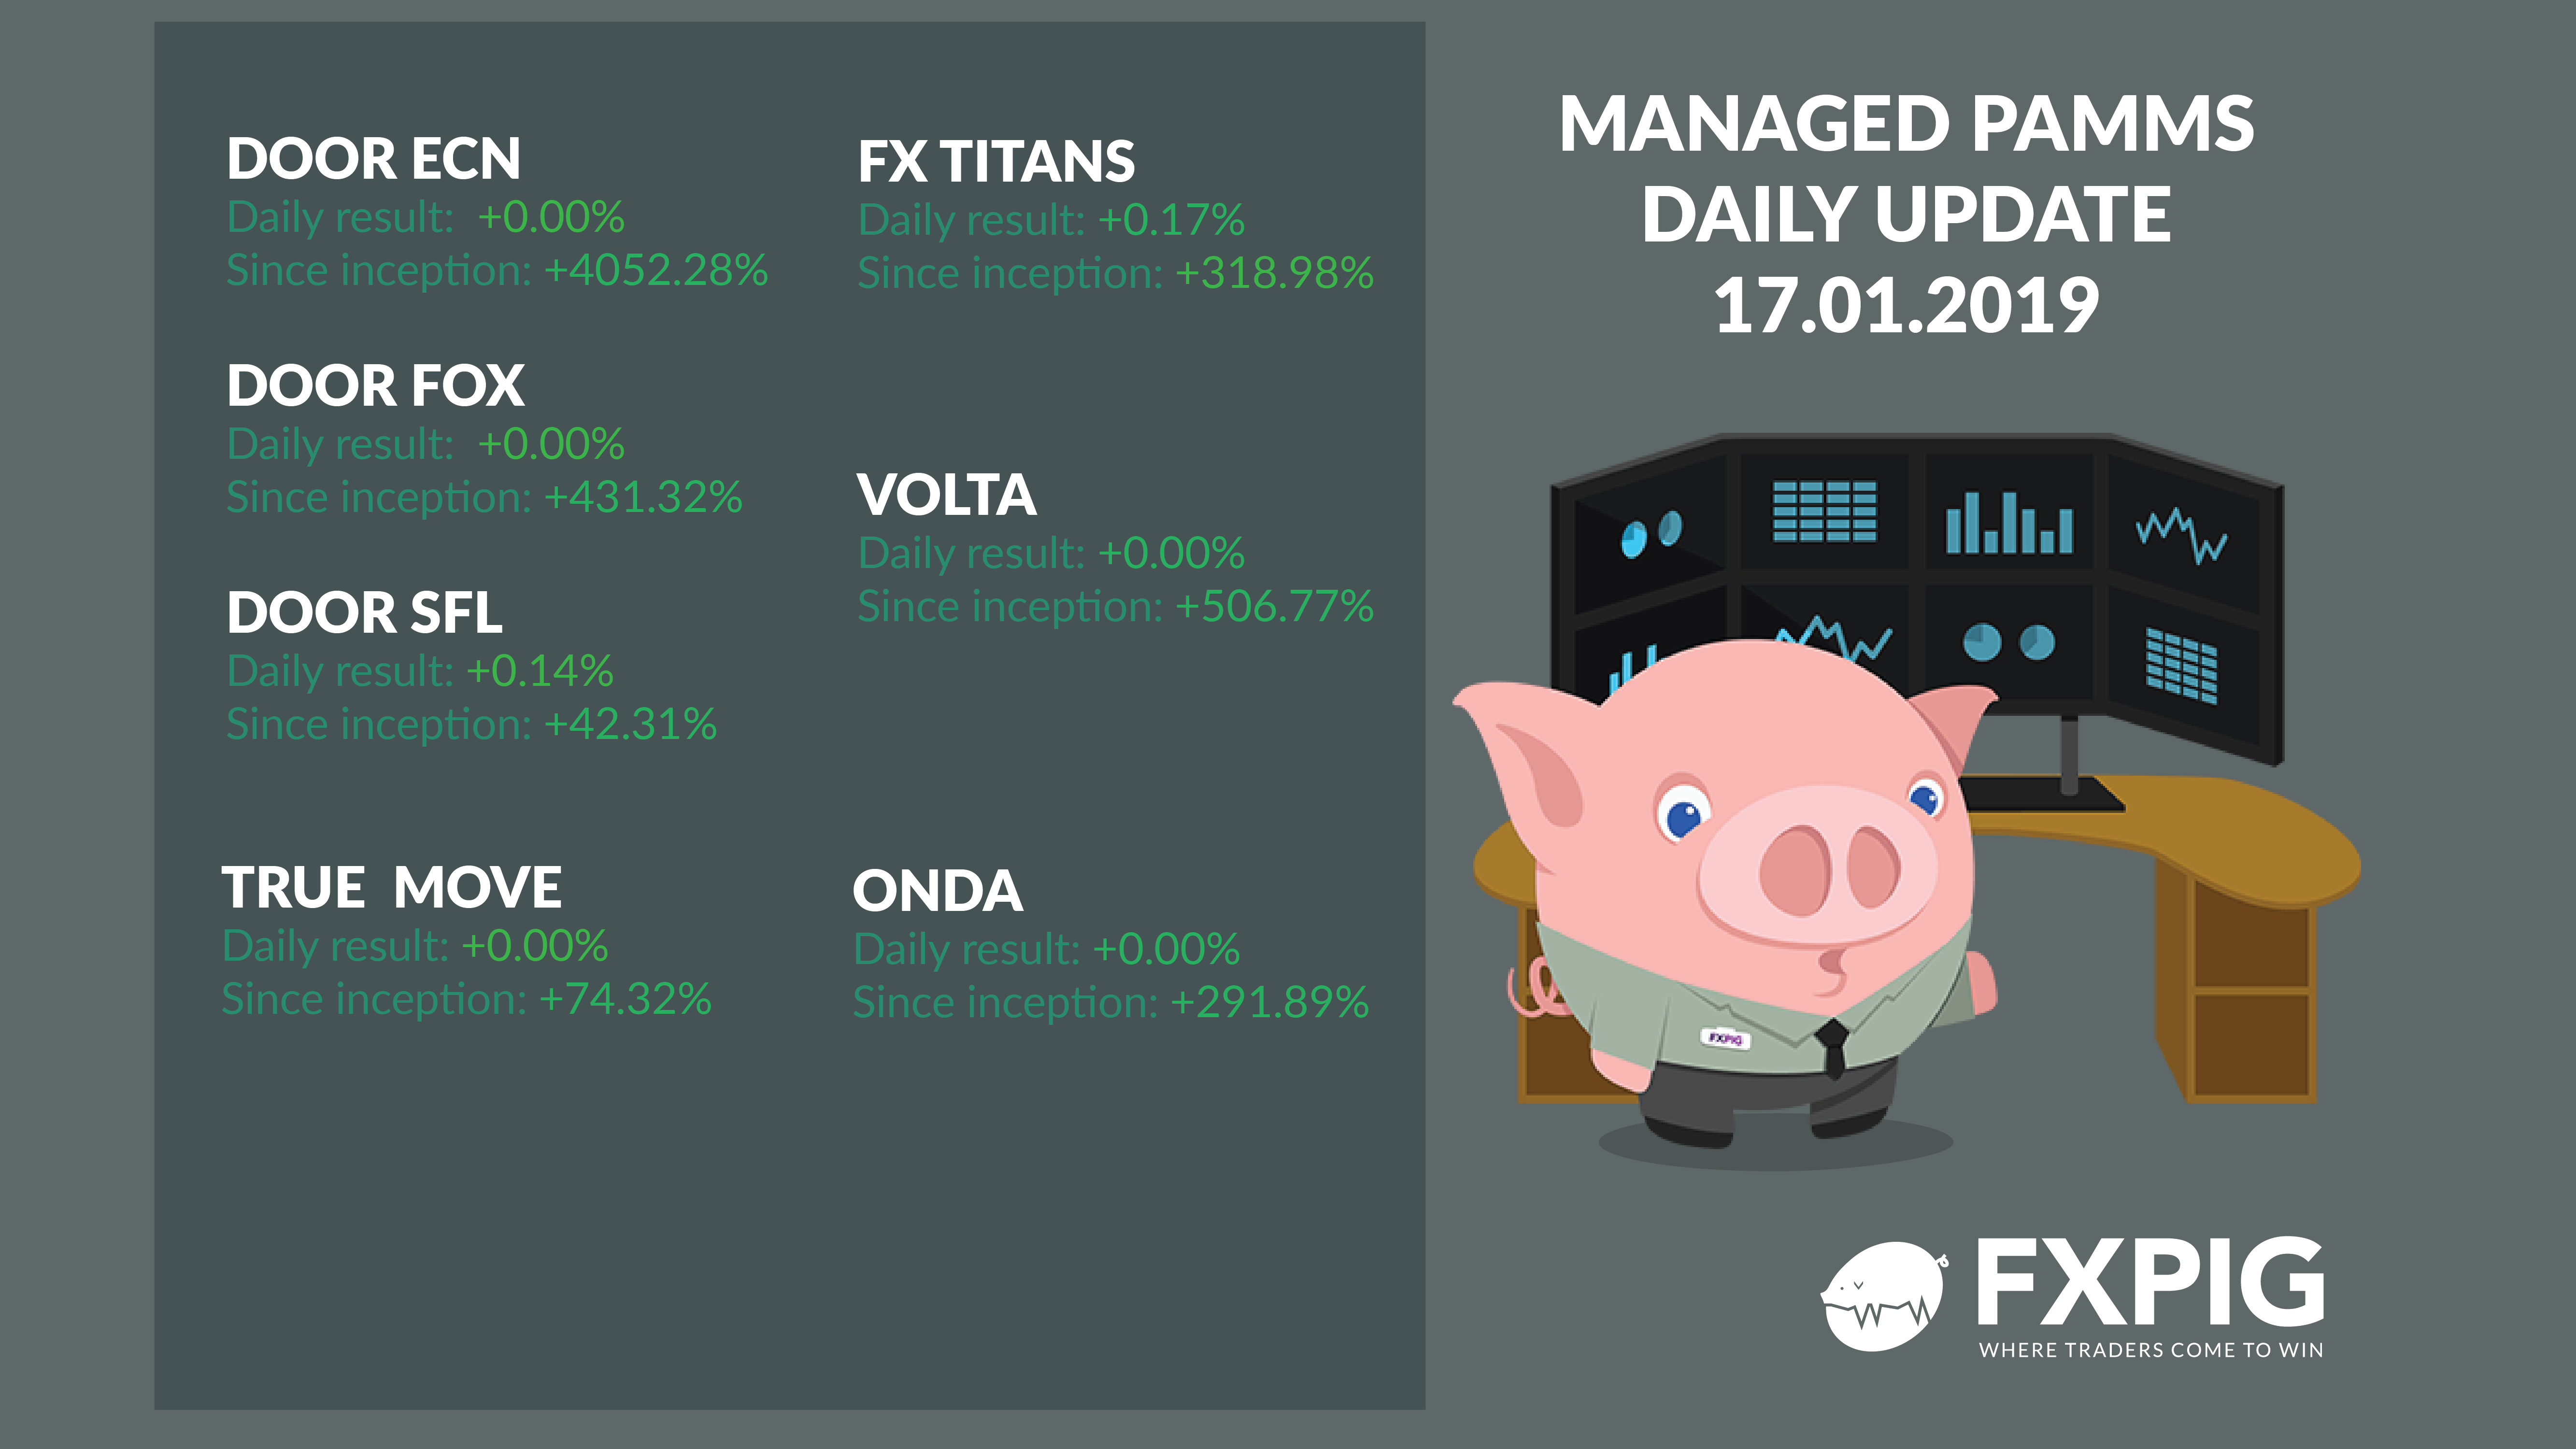 Forex_Trading_Fx_Trader_FXPIG_PAMMS_MANAGED_ACCOUNTS_PROFIT_17.01.2019